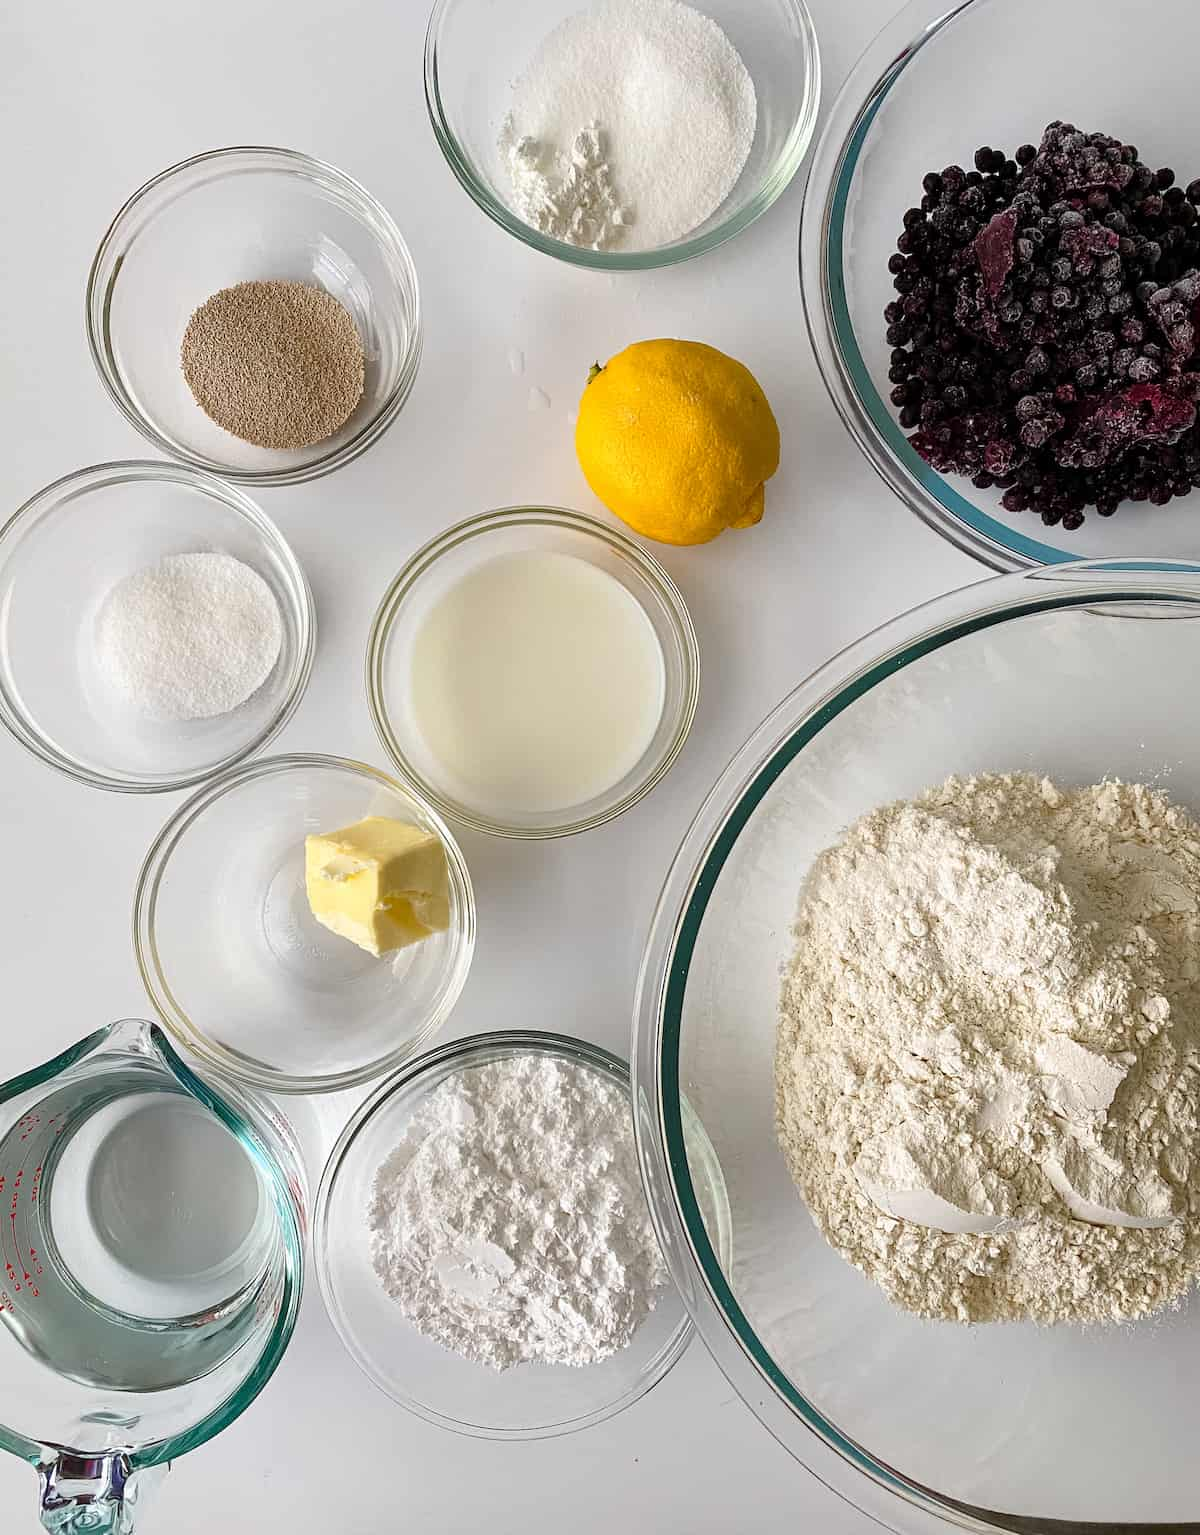 Ingredients for blueberry sweet buns.